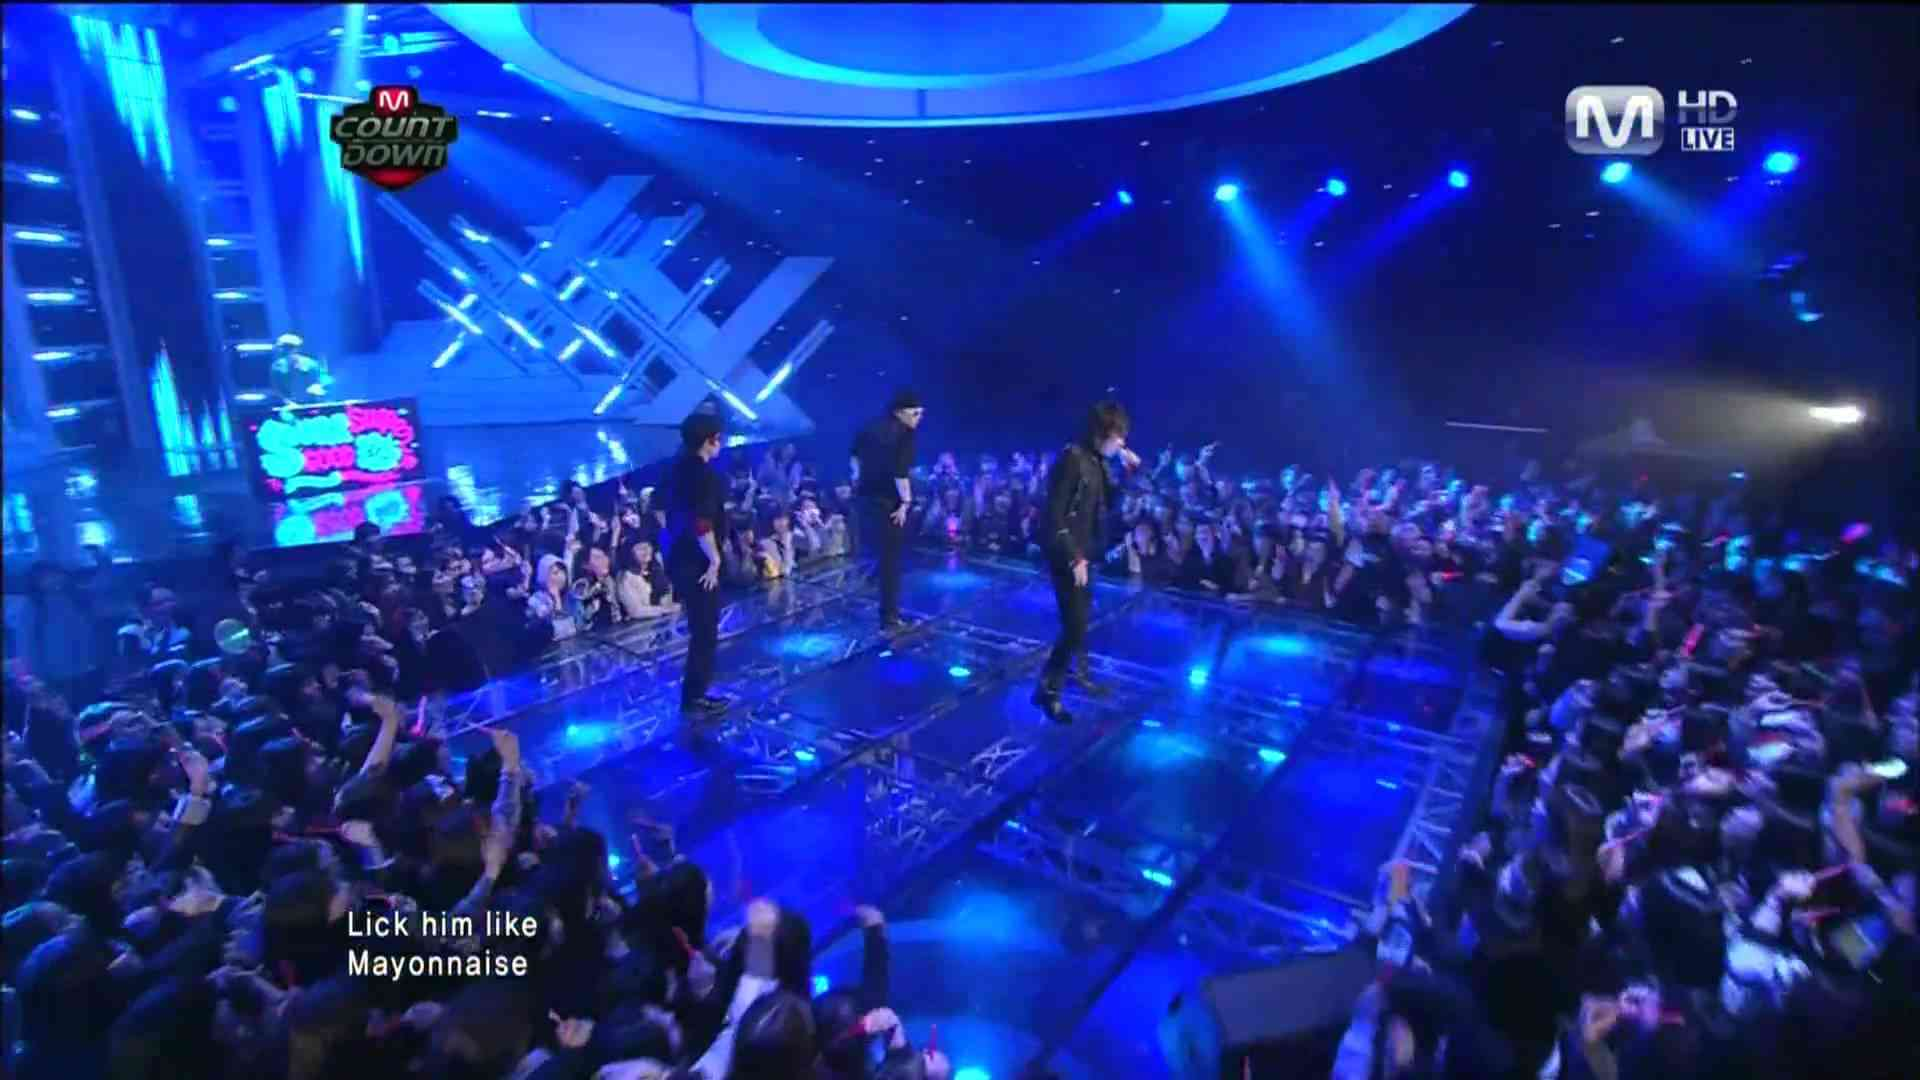 110224 M-net Y@m@P - PARTY DON'T STOP - YouTube